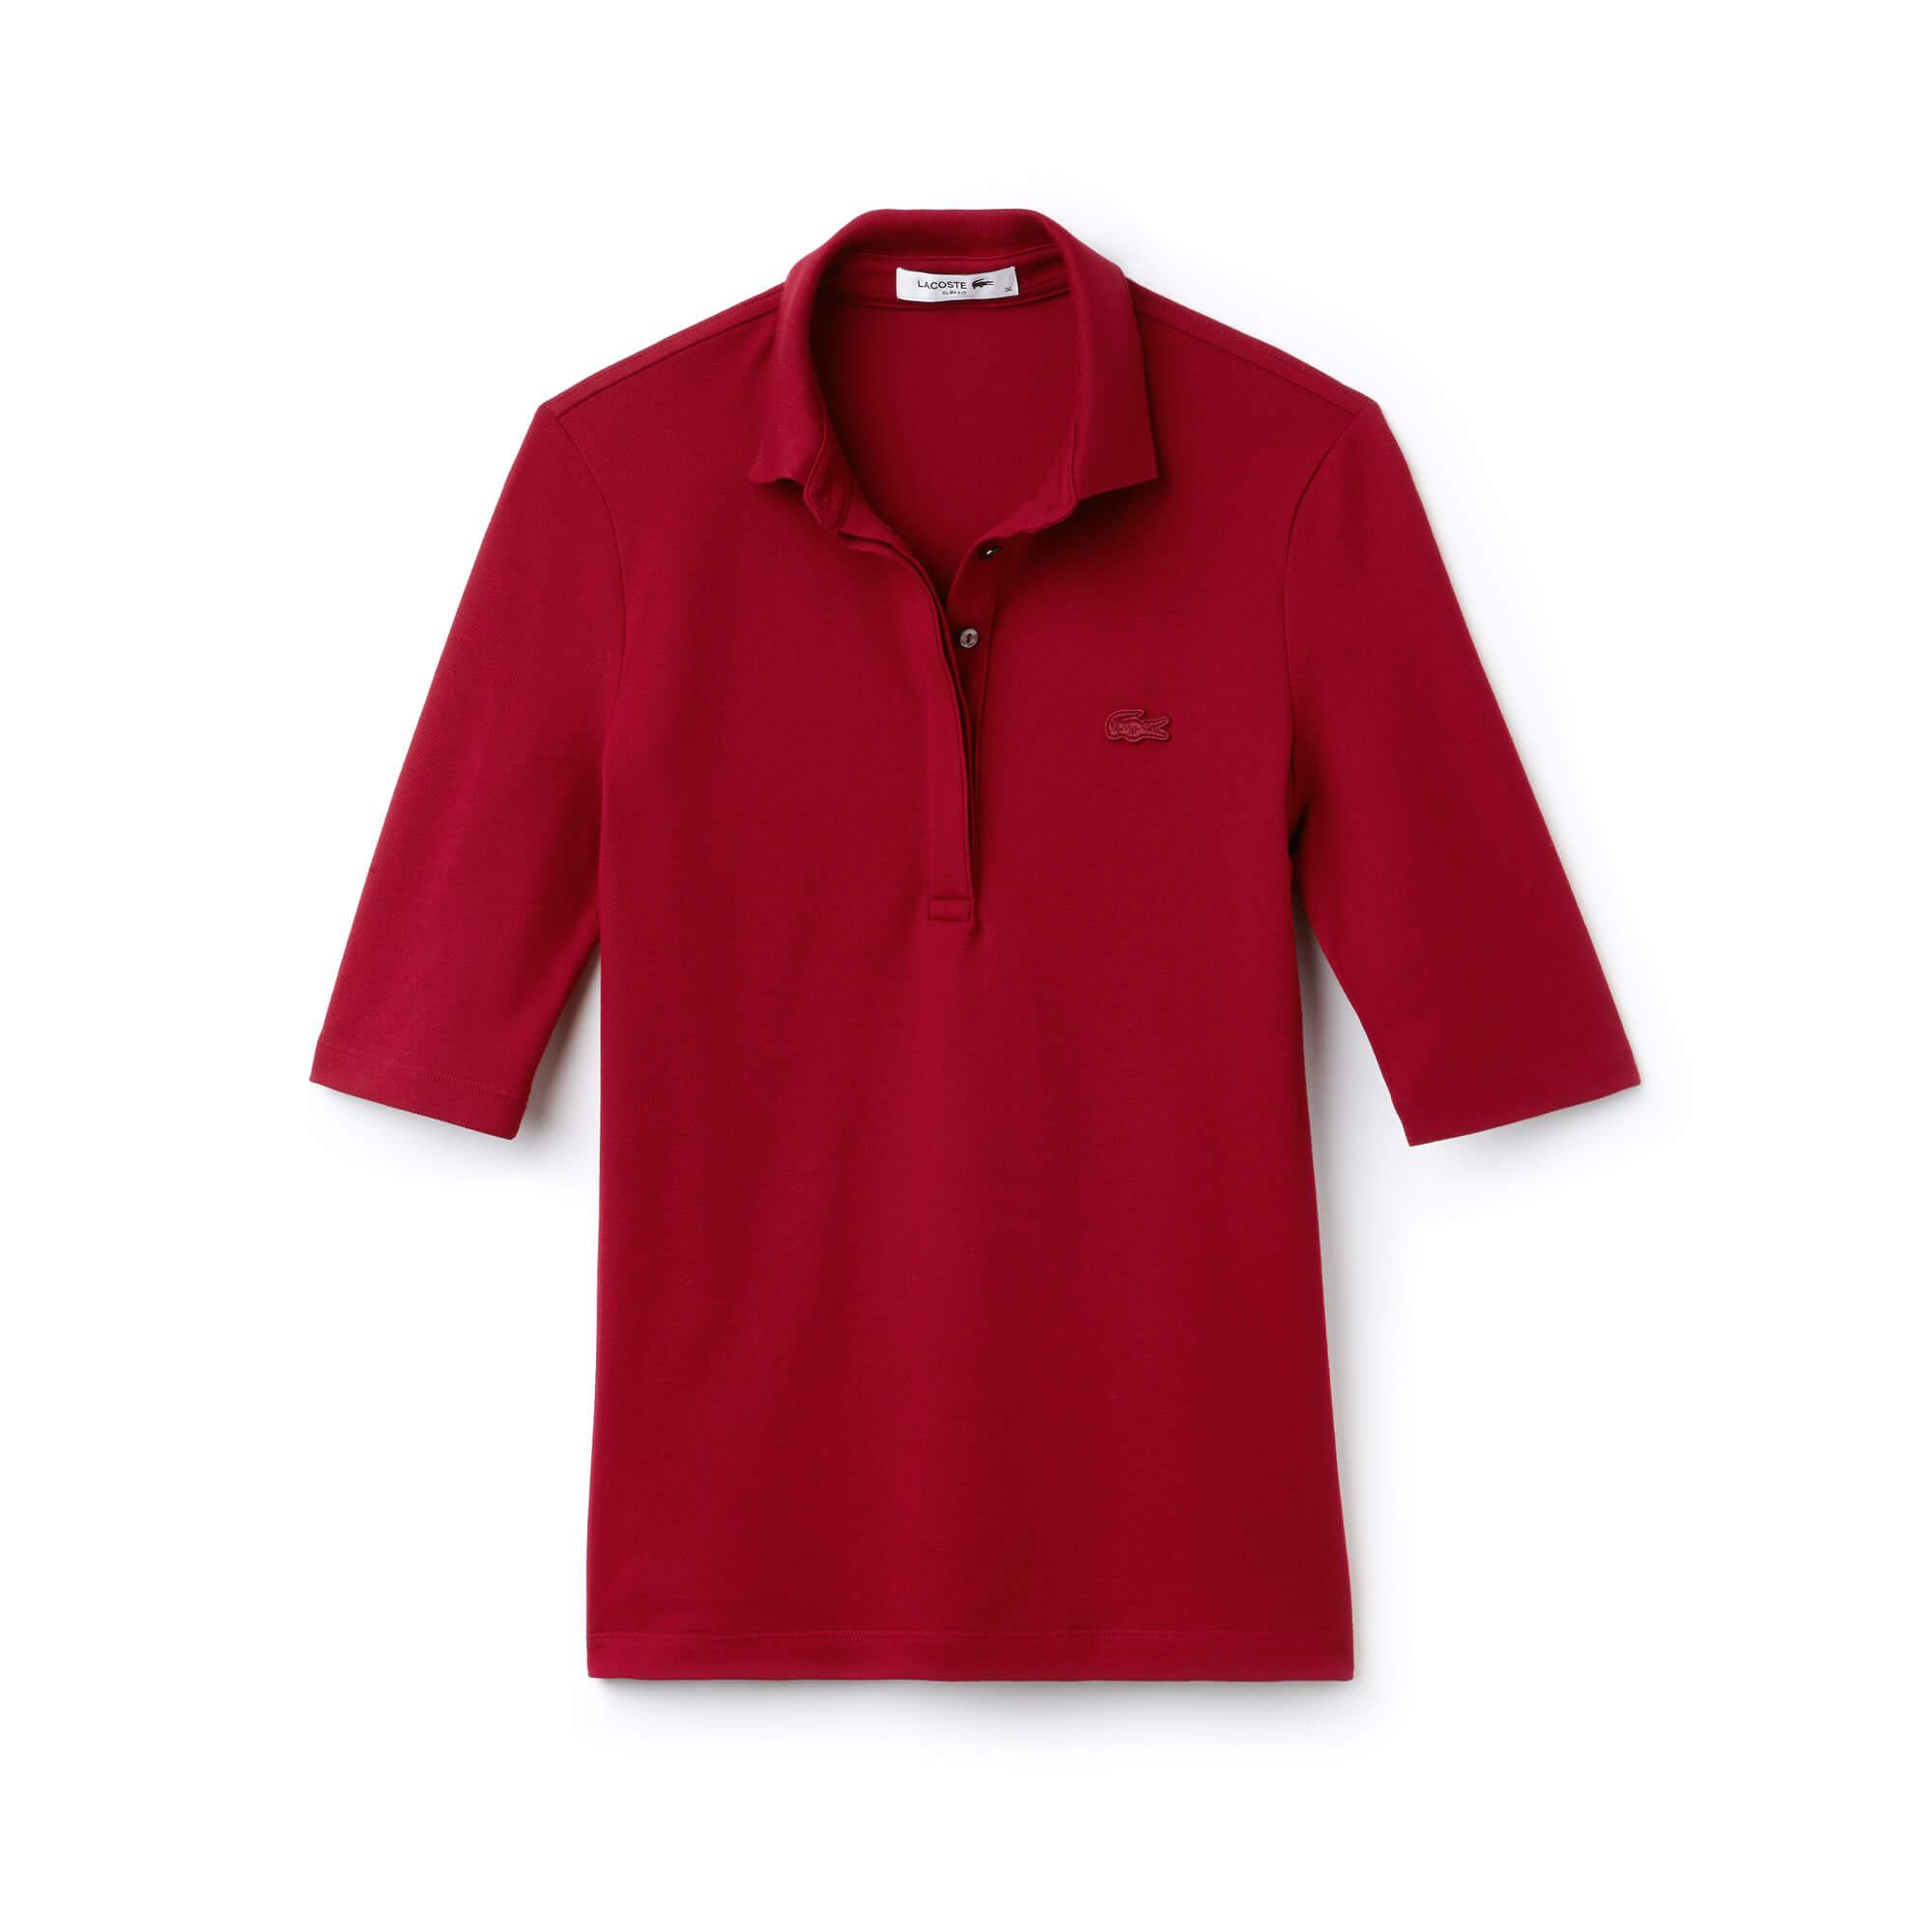 Lacoste Kadın Slim Fit Truvakar Kollu Bordo Polo